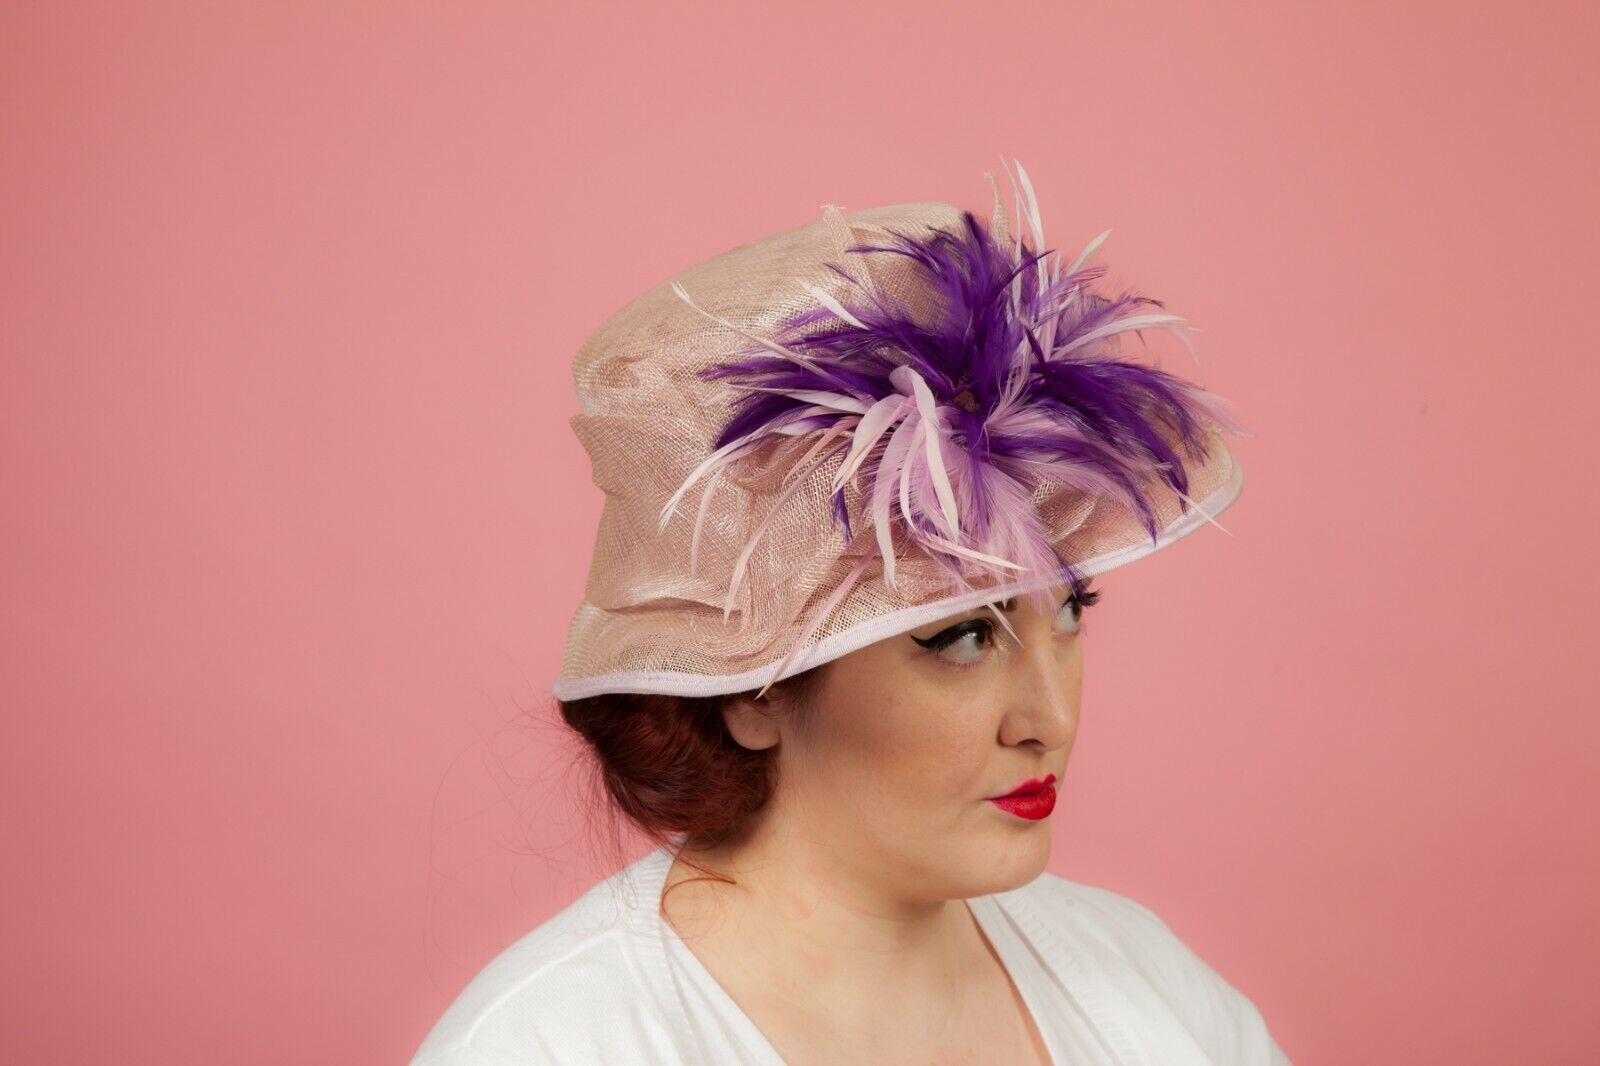 Pink/Purple feathered formal hat by Pamela Bromley